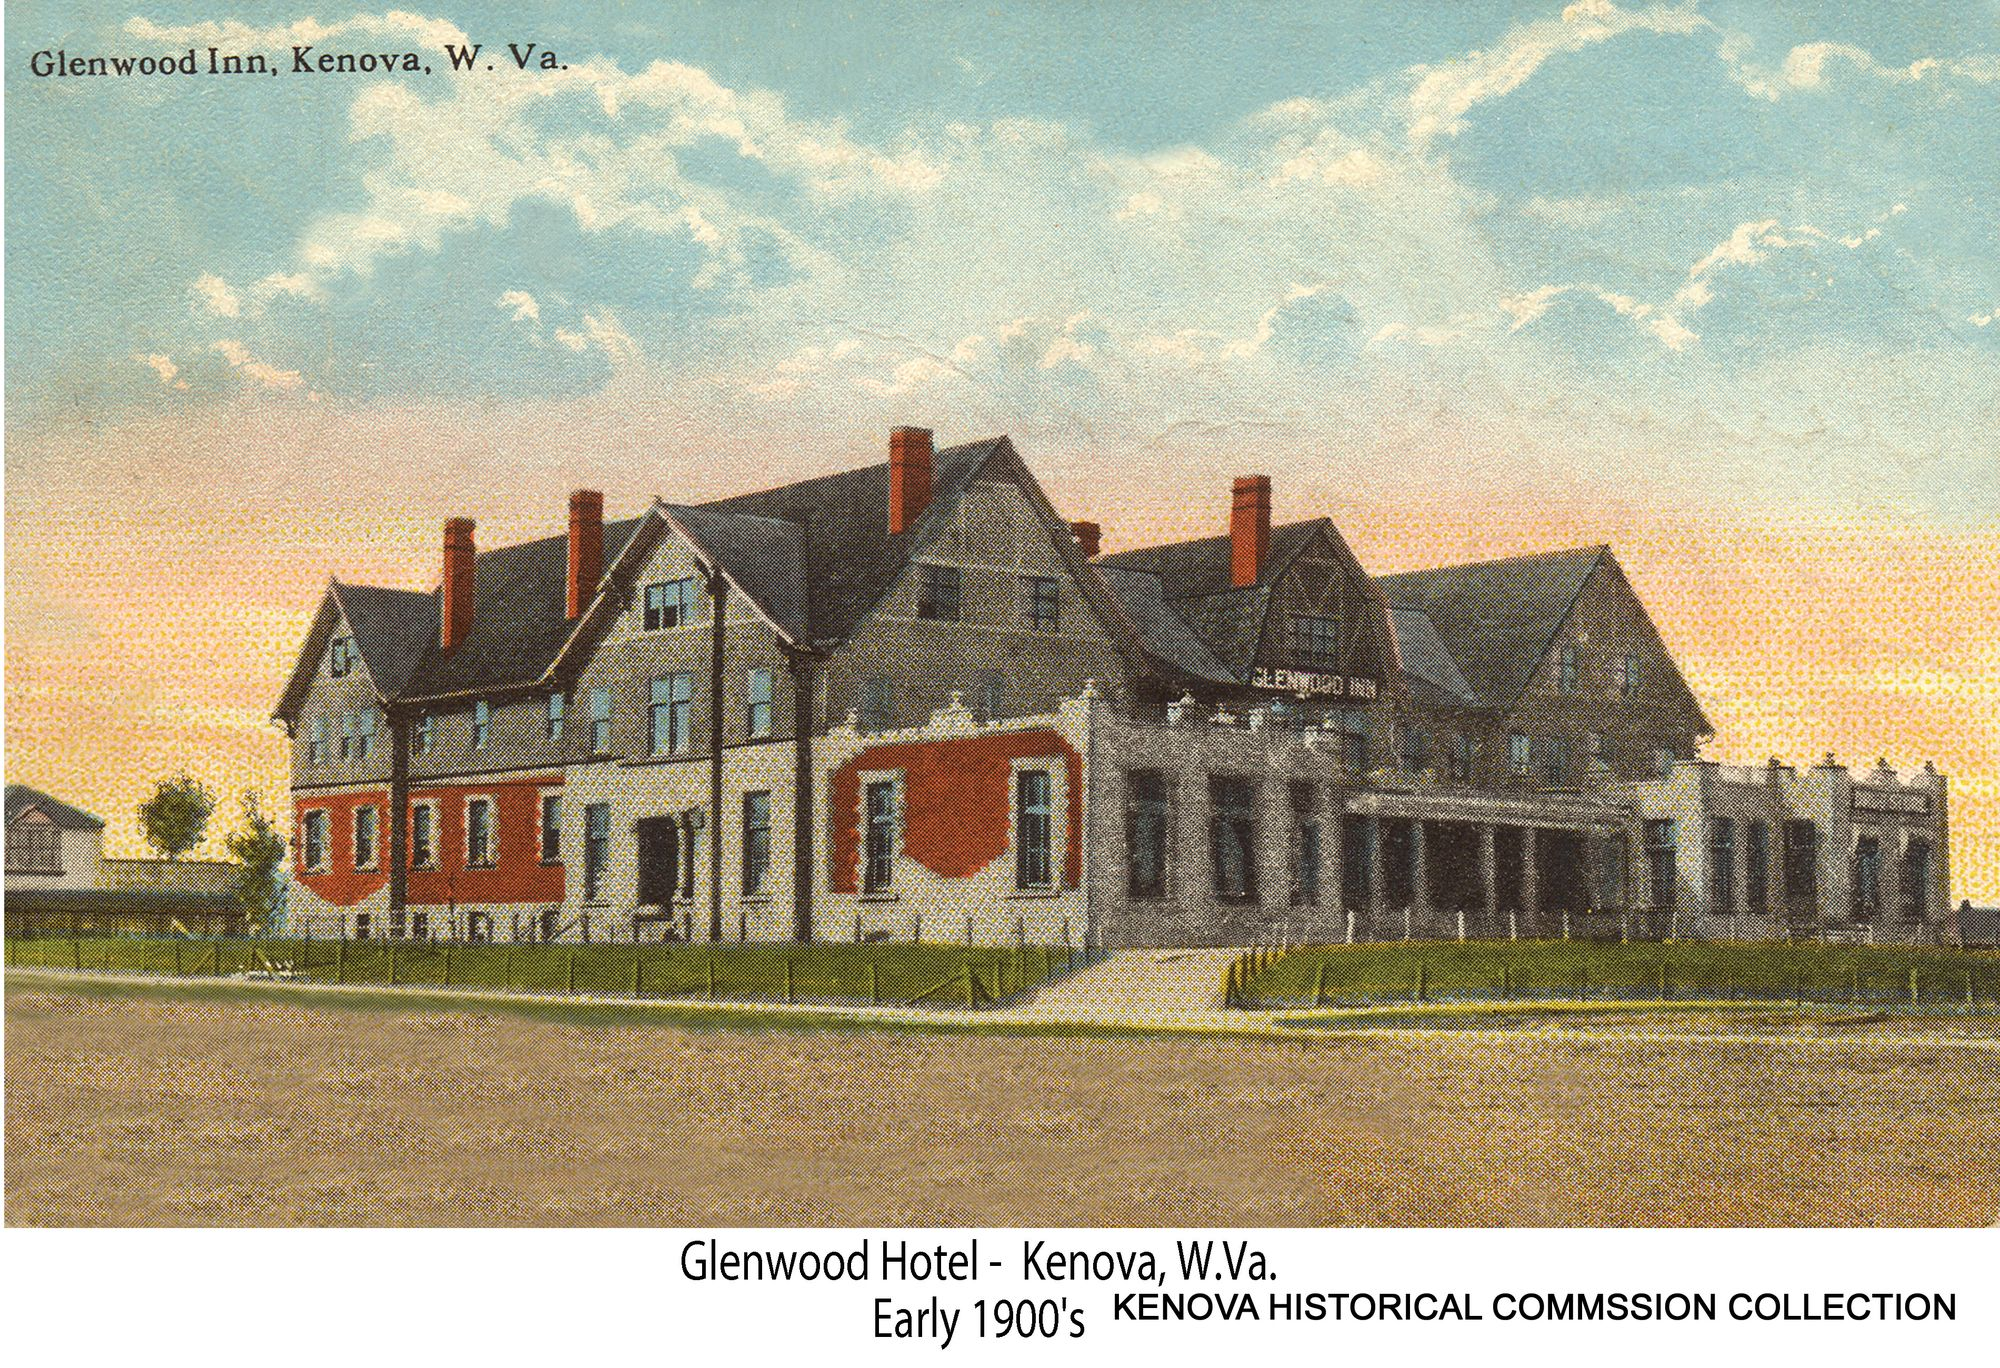 Color postcard of the hotel, this time with the name Glenwood Inn. Image courtesy of the Kenova Historical Commission.